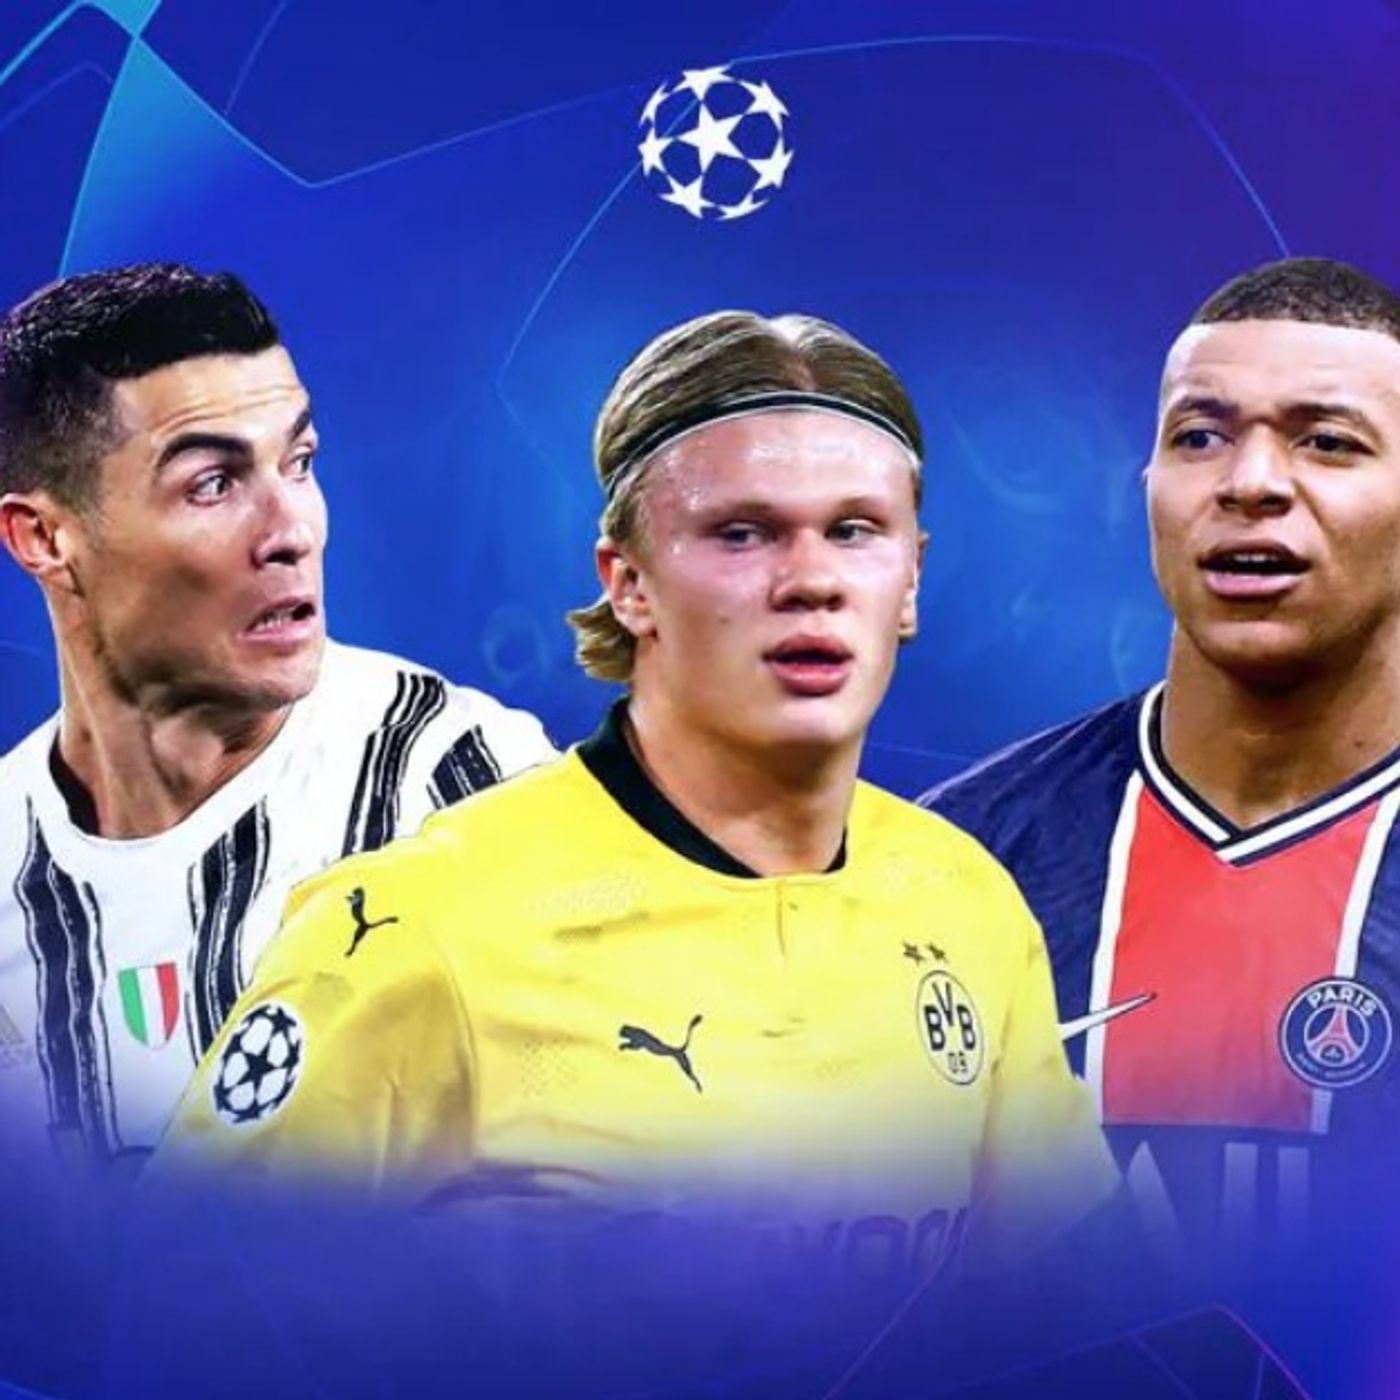 The UEFA Leagues: Betting Previews and Official Picks for Champions League & Europa League (03/09 - 03/11)